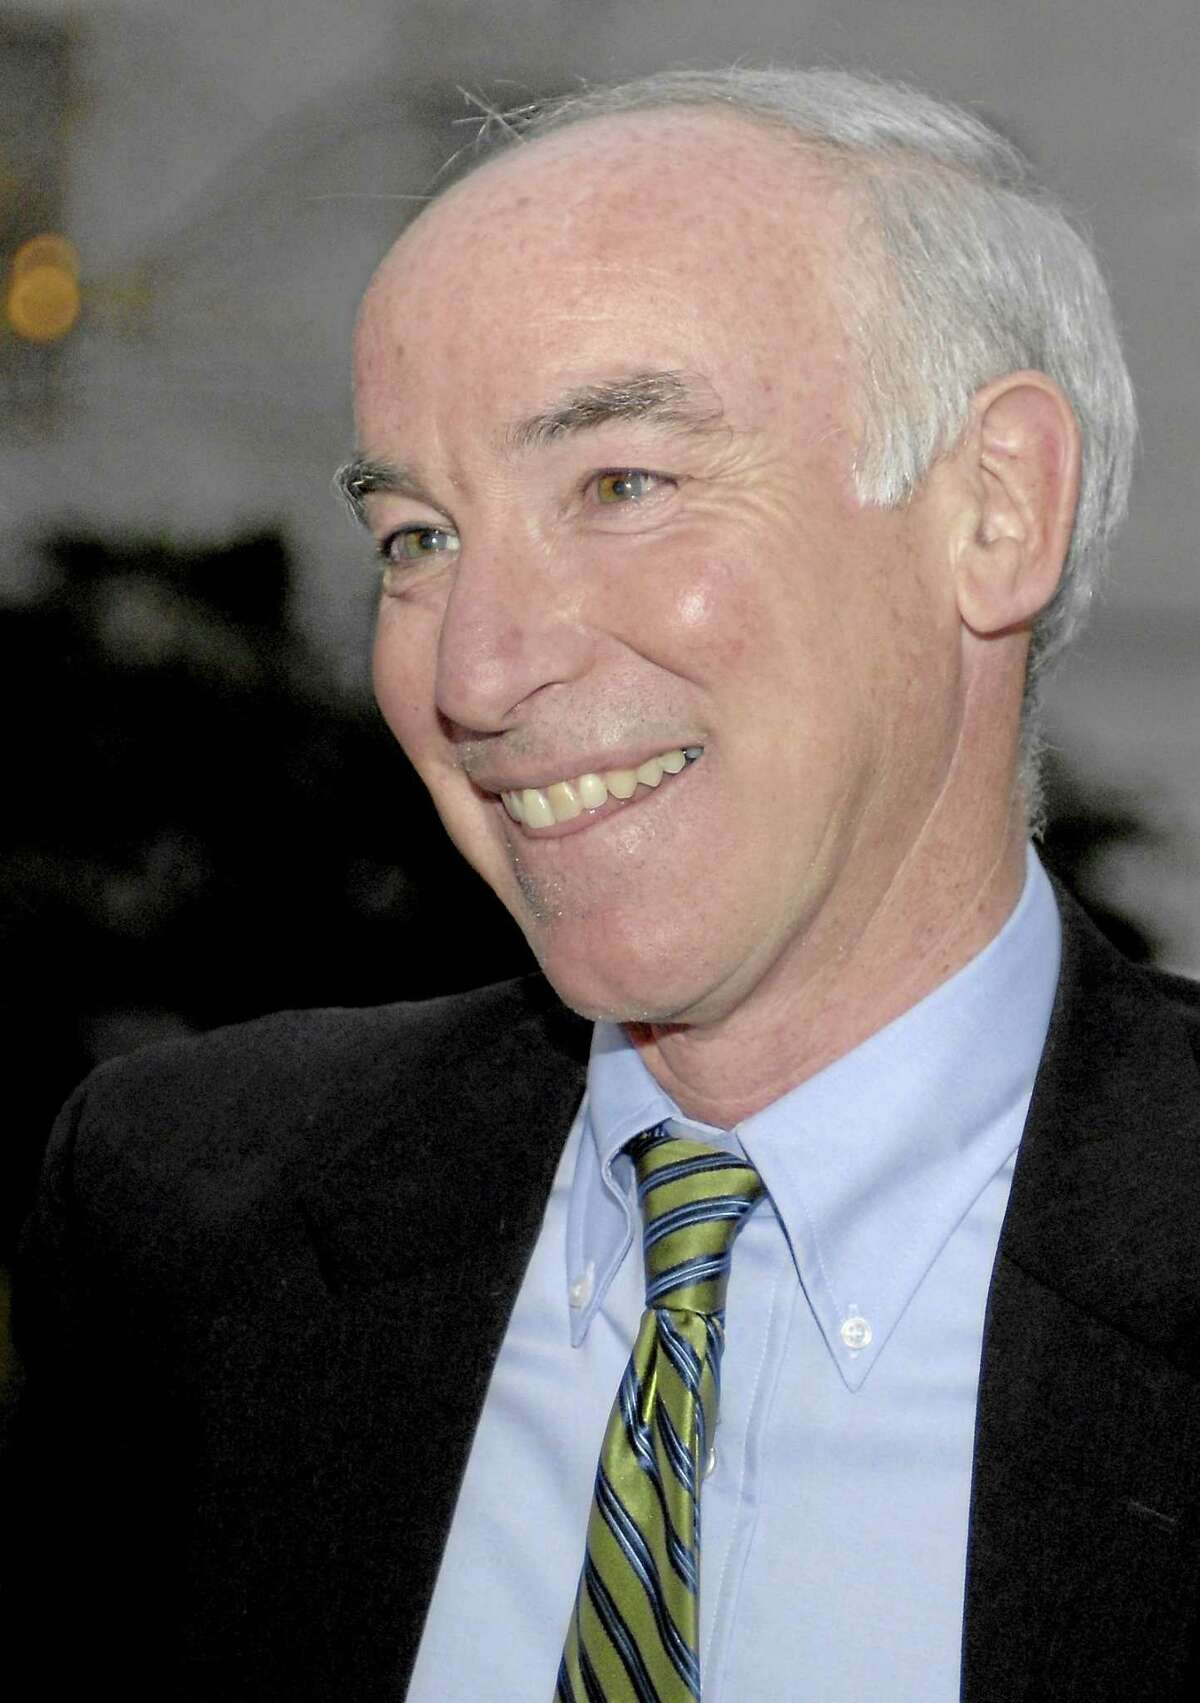 U.S. Rep. Joe Courtney is the guest at the Middlesex County Chamber of Commerce's February breakfast meeting.